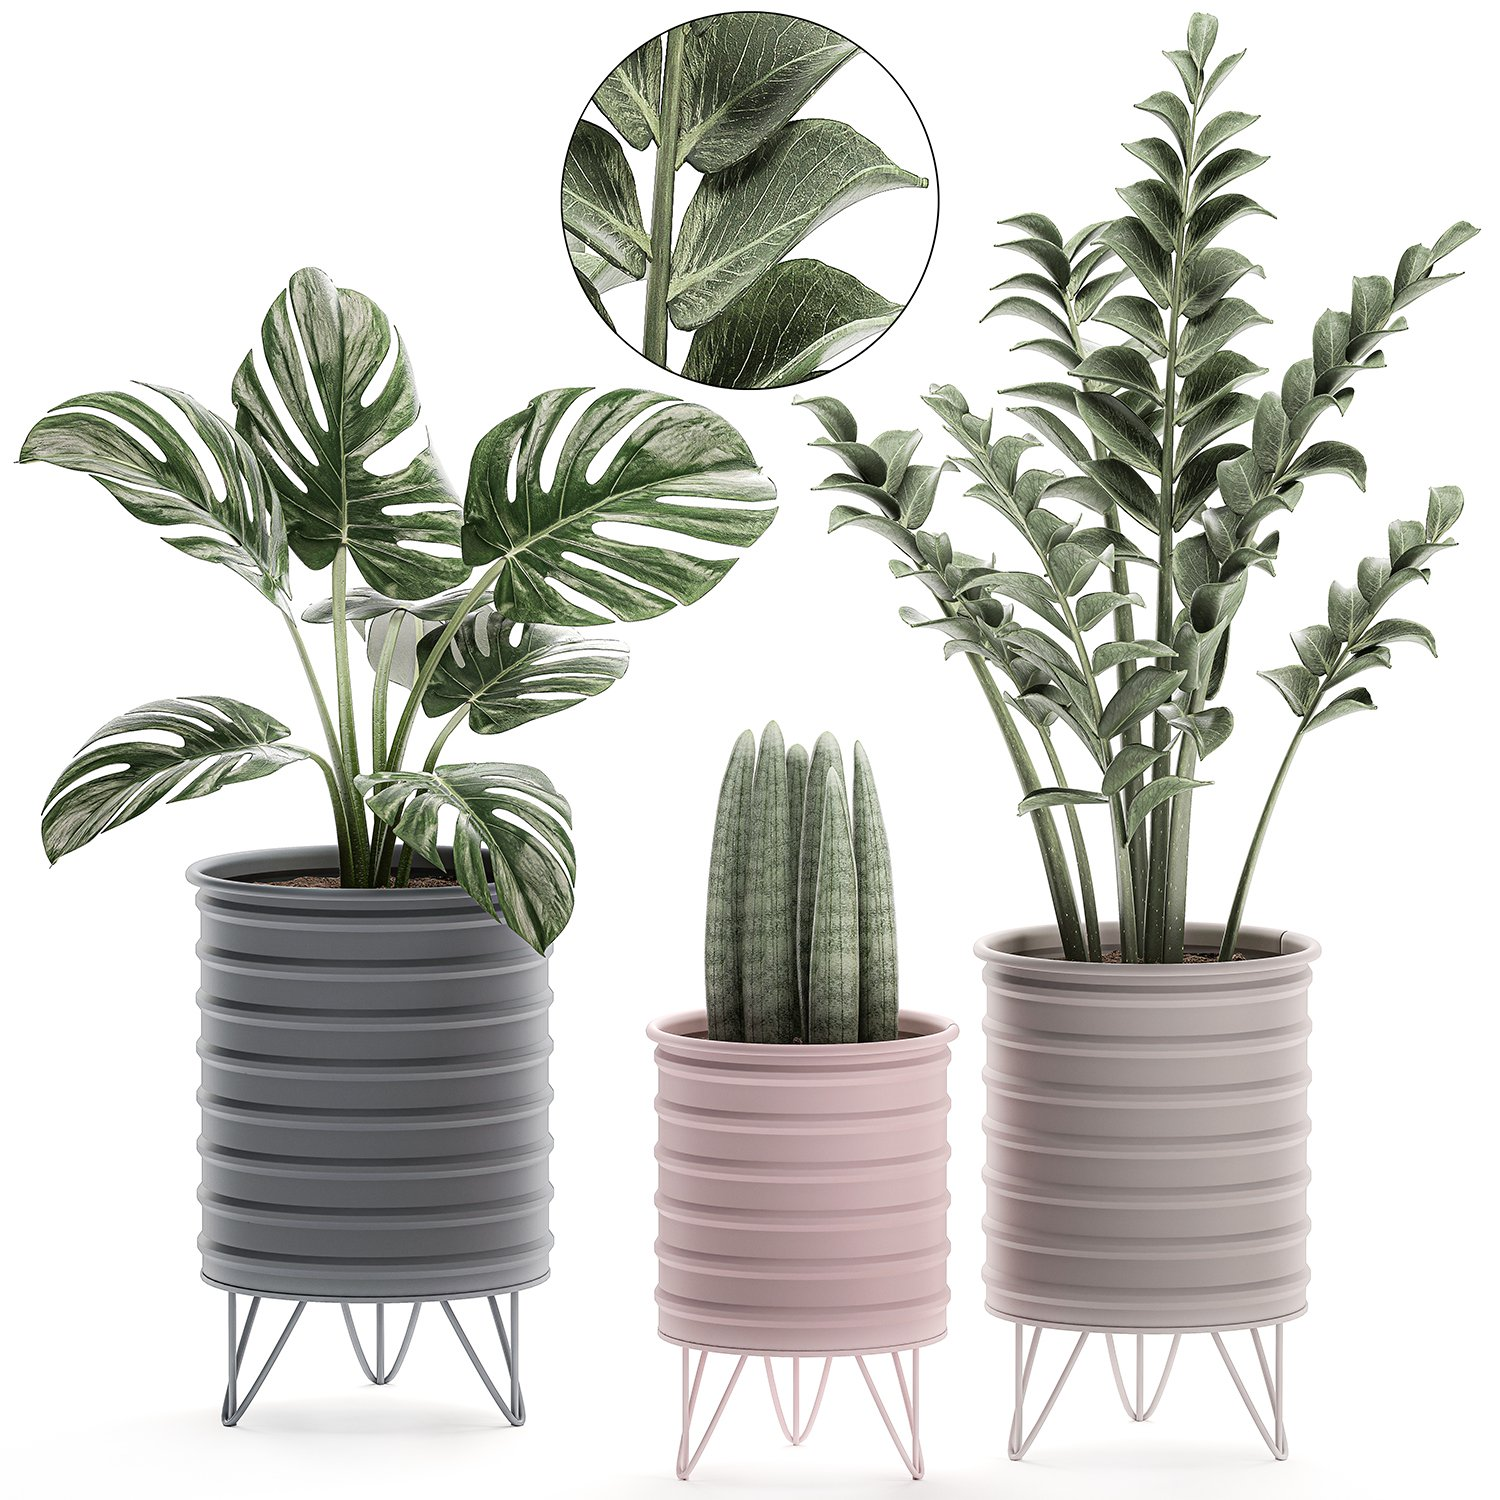 Decorative Plants In Pots On A Stand For The Interior 529 3d Model